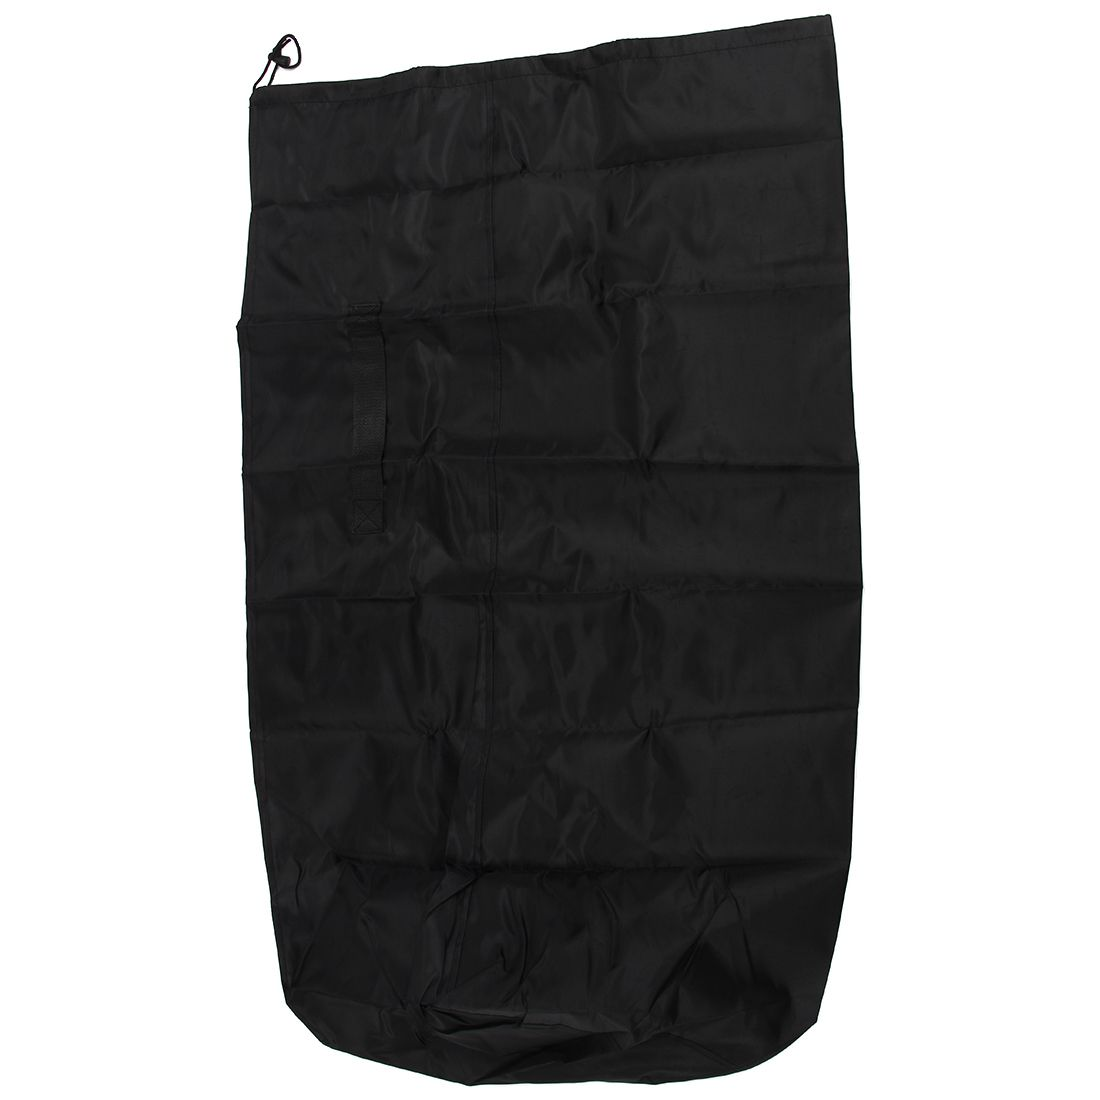 New Gate Check Bag Stroller Carrying Bags For Double